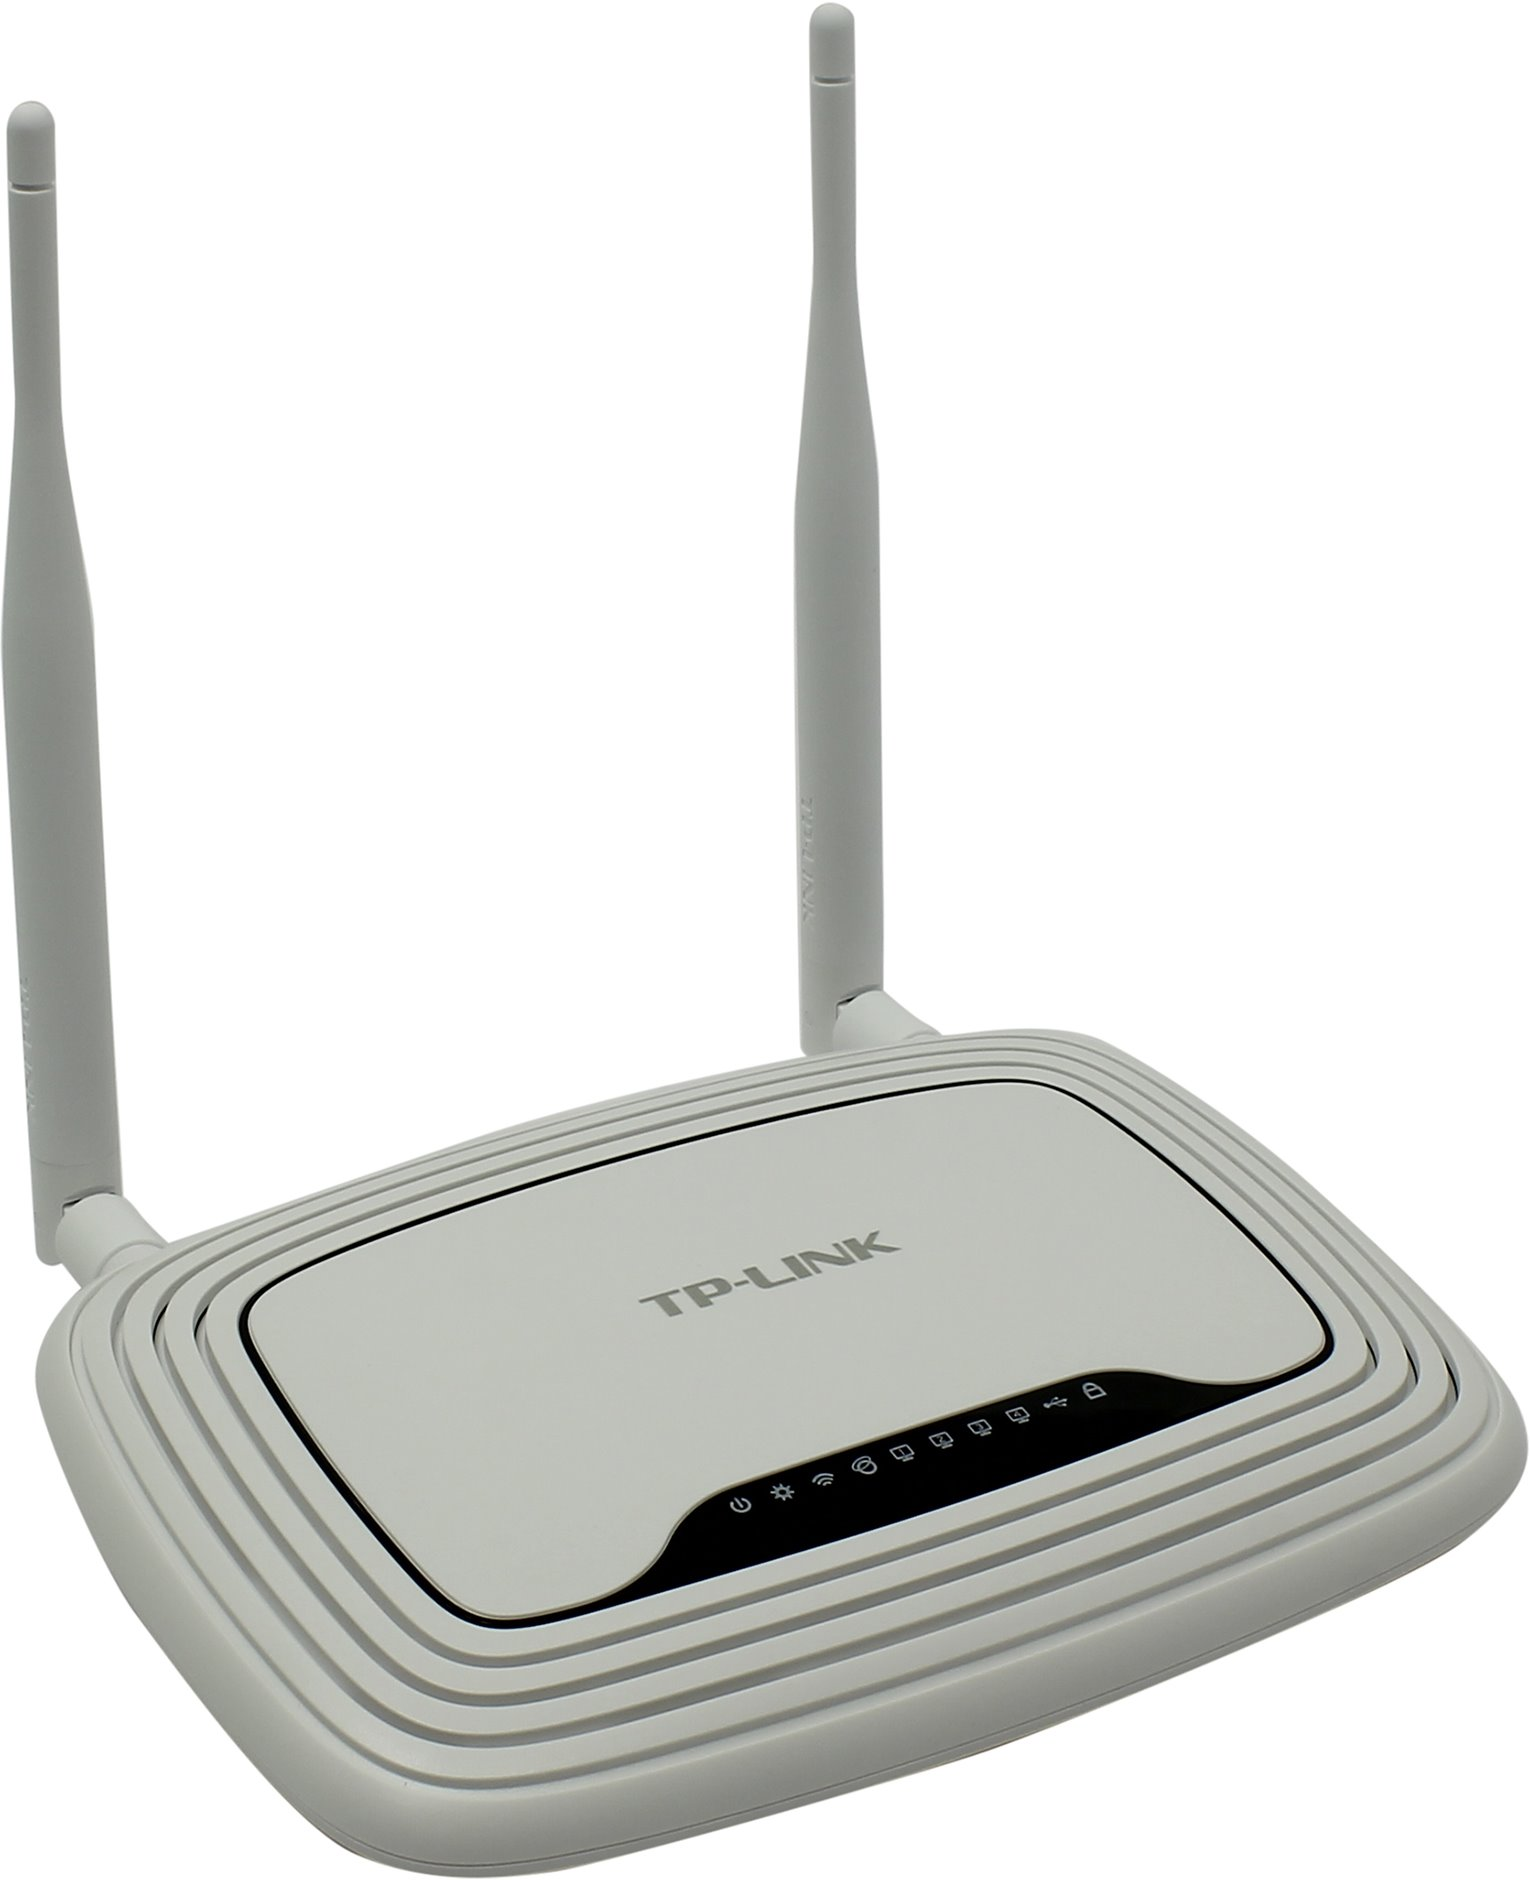 TP-Link TL-WR842N V1 Router Drivers for Windows 7